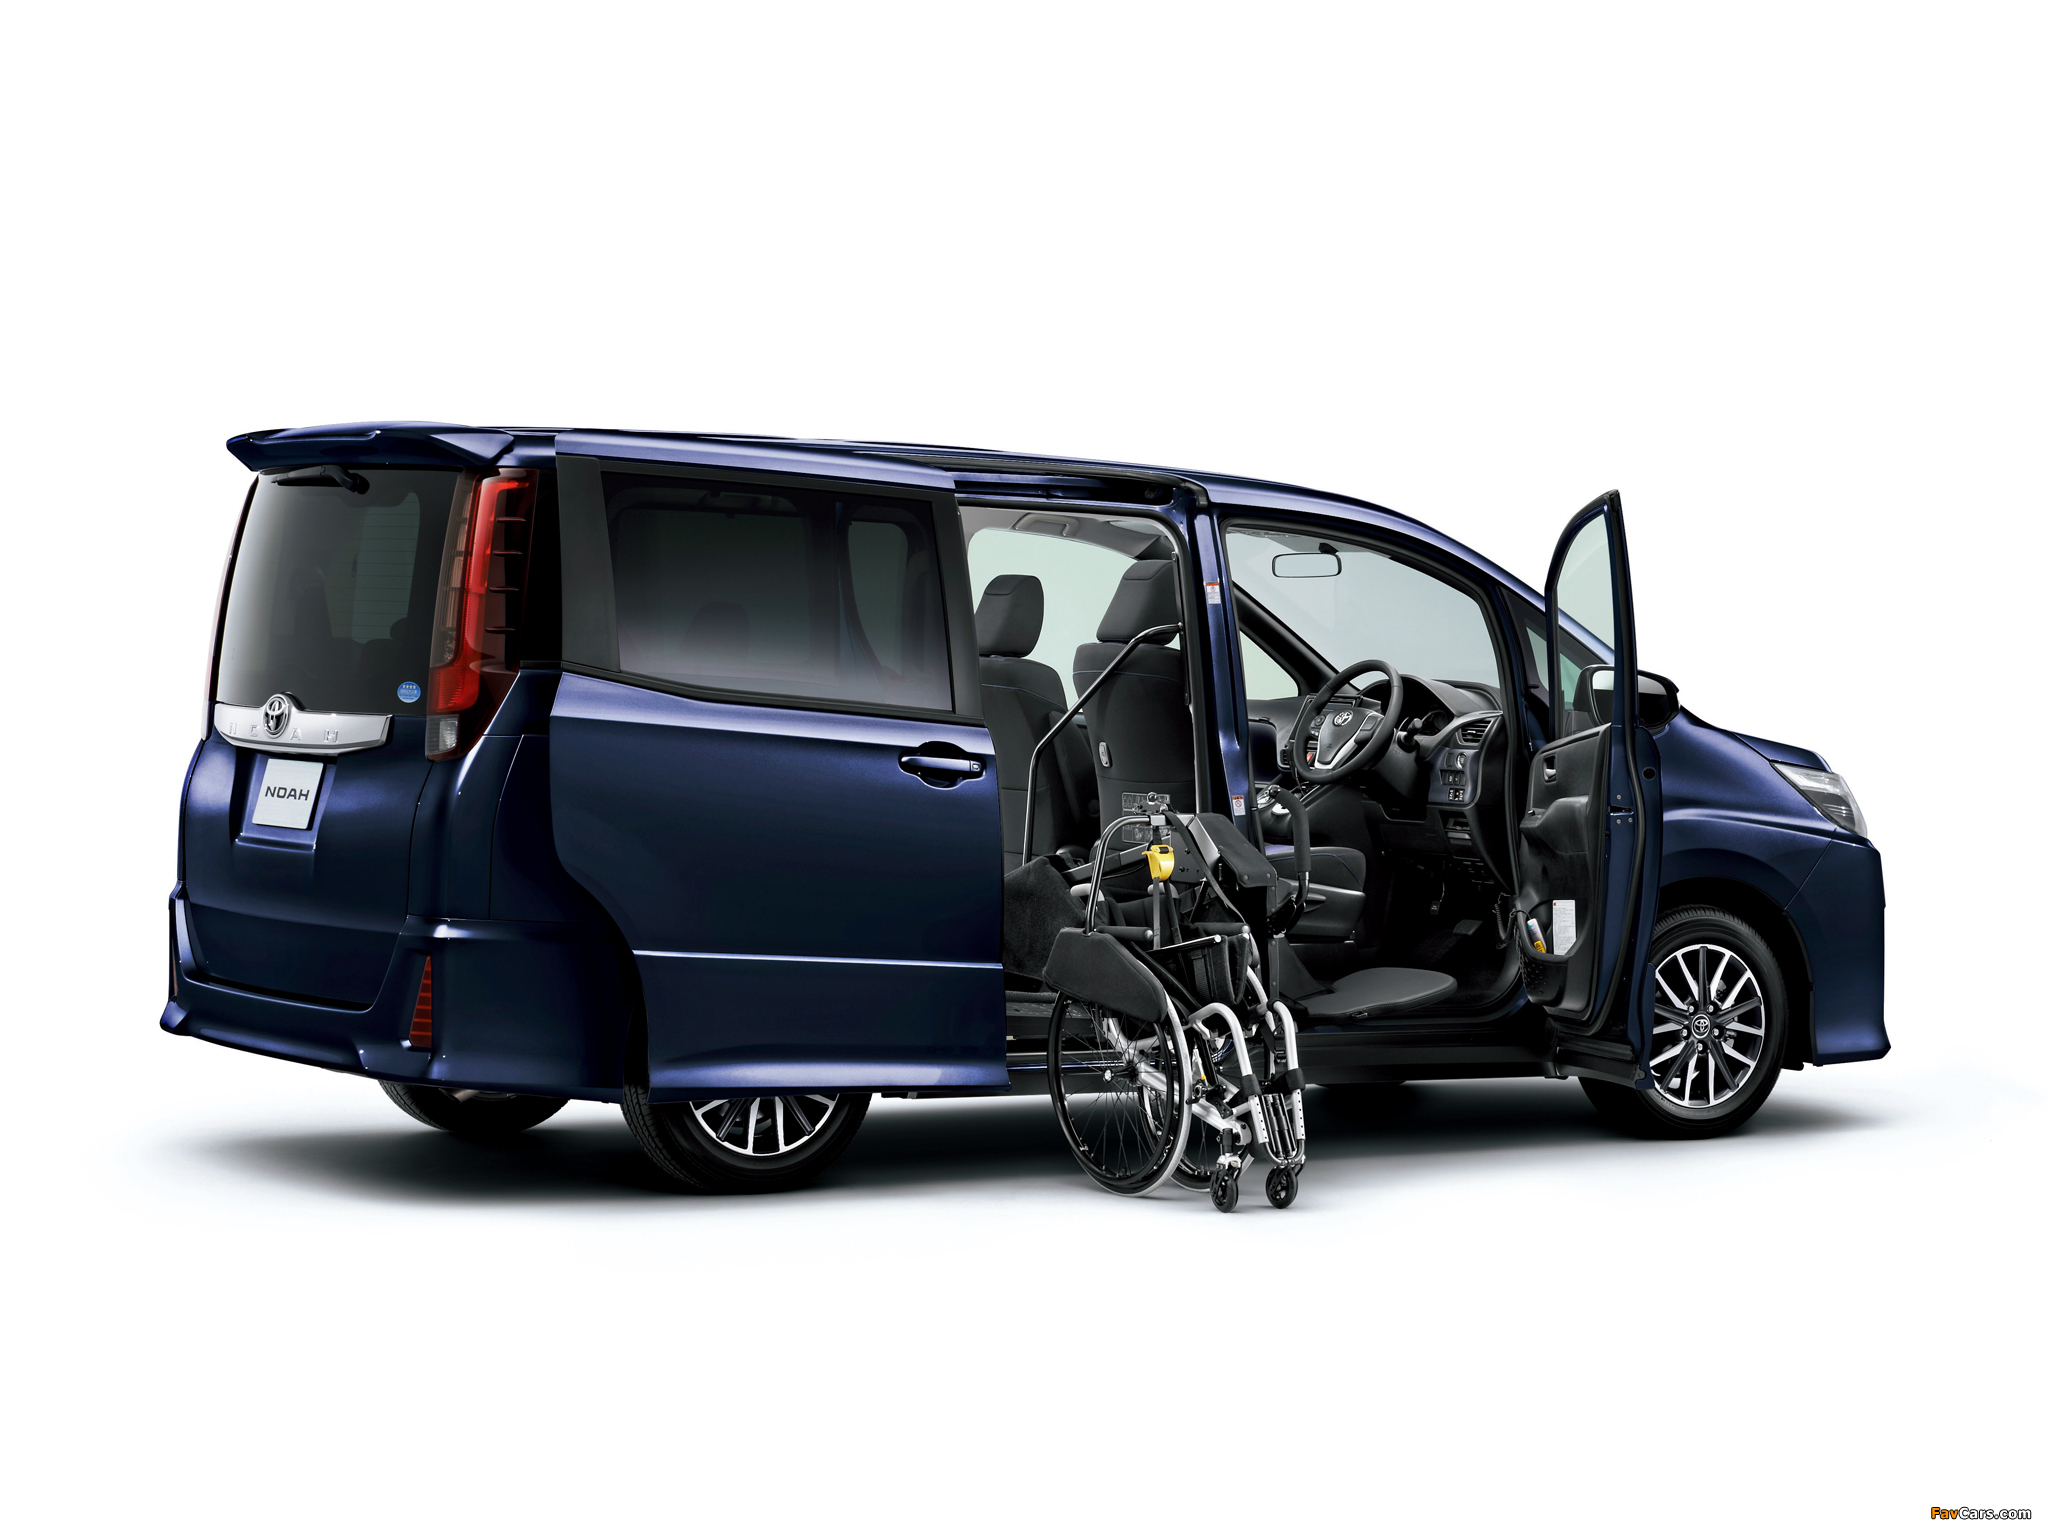 Toyota Noah Welcab 2014 wallpapers (2048 x 1536)